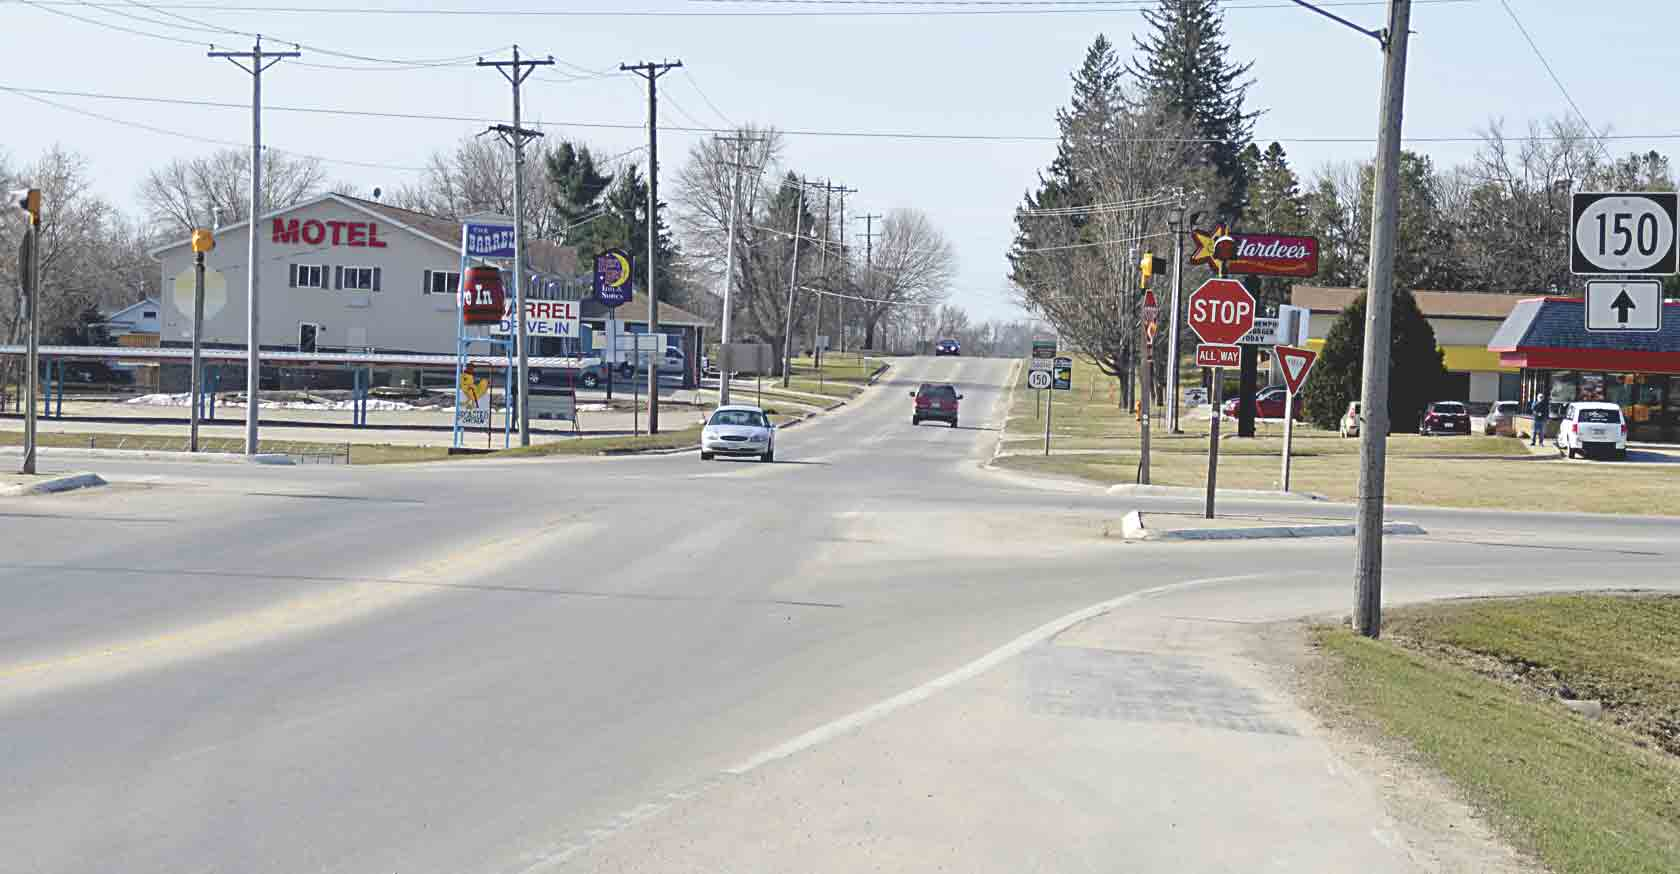 Could Highway 150 be the next four-lane corridor in Iowa? That is what the Highway 150 Coalition, made up of representatives from cities along Highway 150, is currently exploring. Shown is the intersection of Highways 150 and 18 in West Union. (Chris DeBack photo) 	Highway 150...